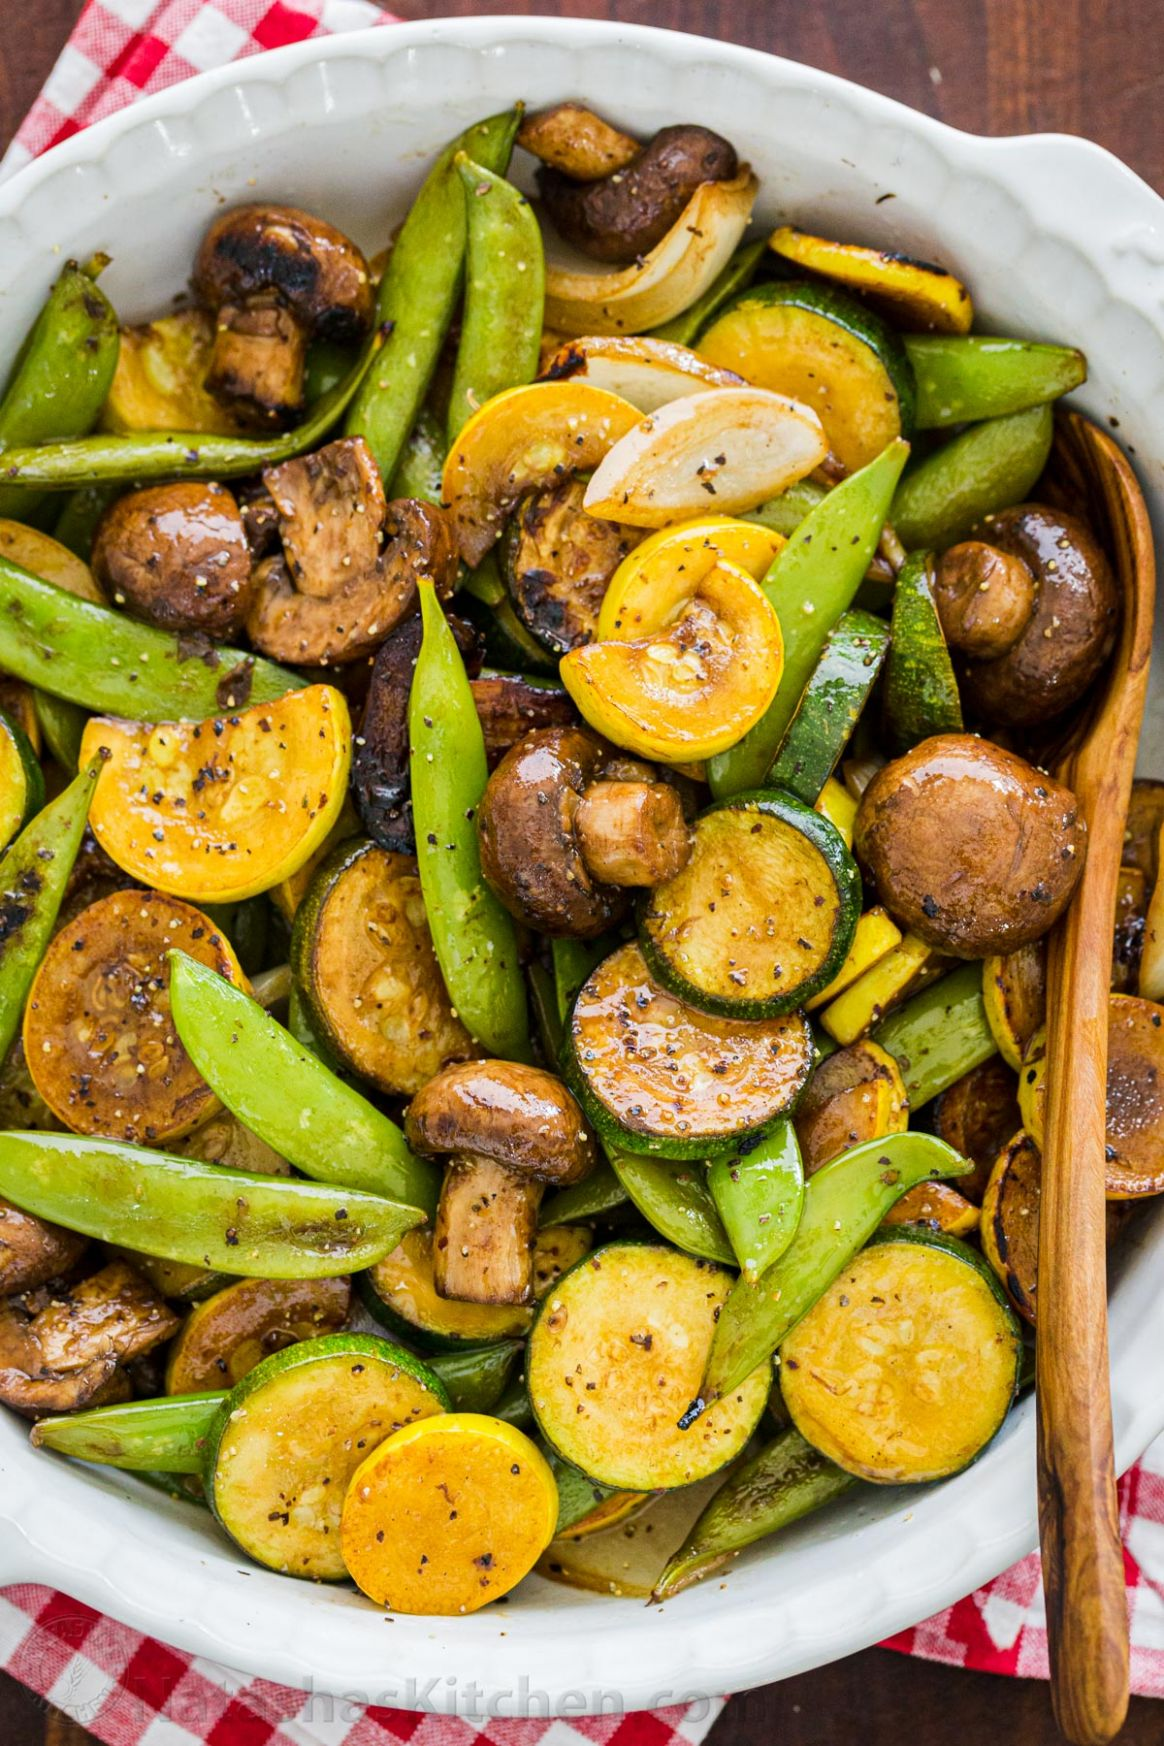 Balsamic Grilled Vegetables - Recipes Vegetables On The Grill